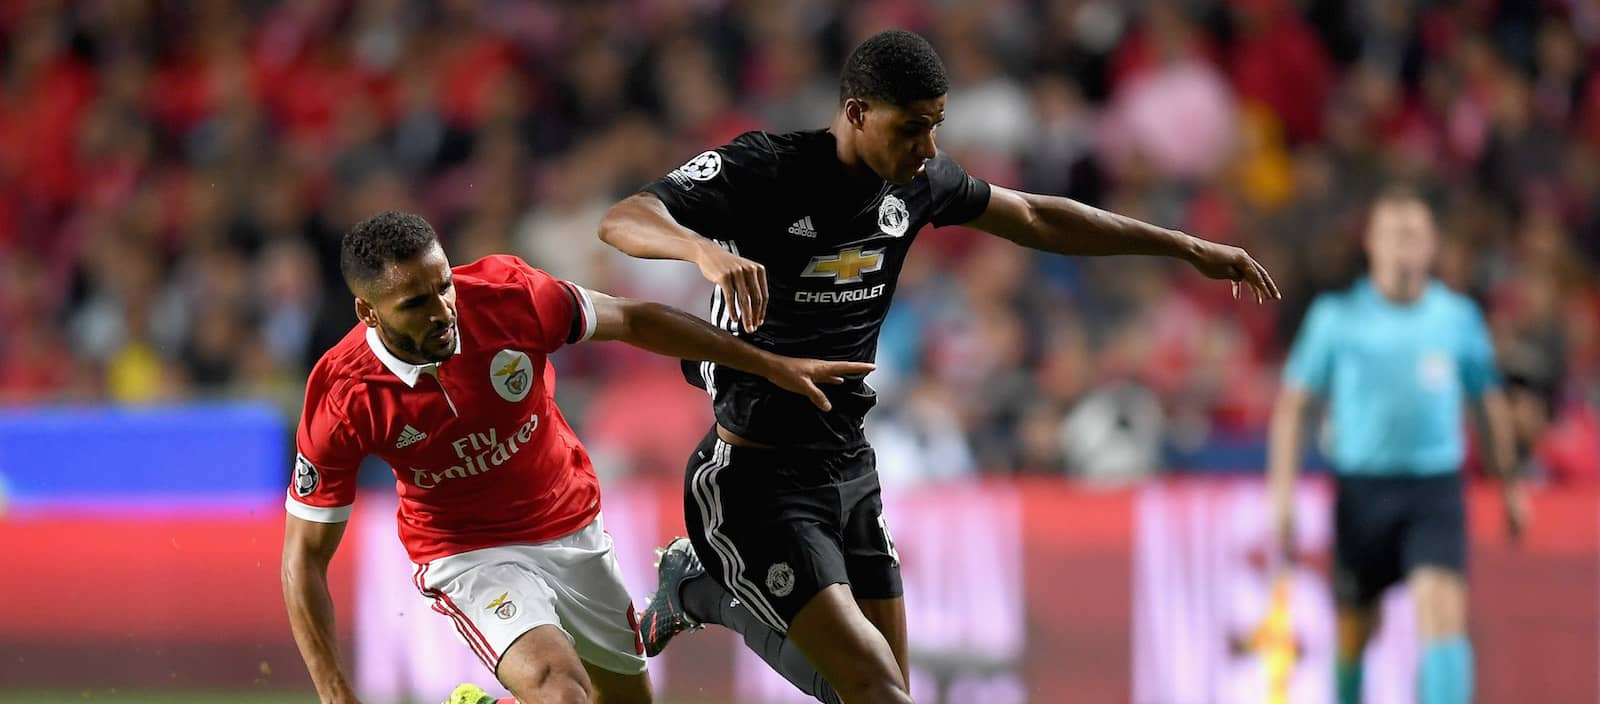 Swansea City vs Manchester United: Potential XI with Marcus Rashford up front